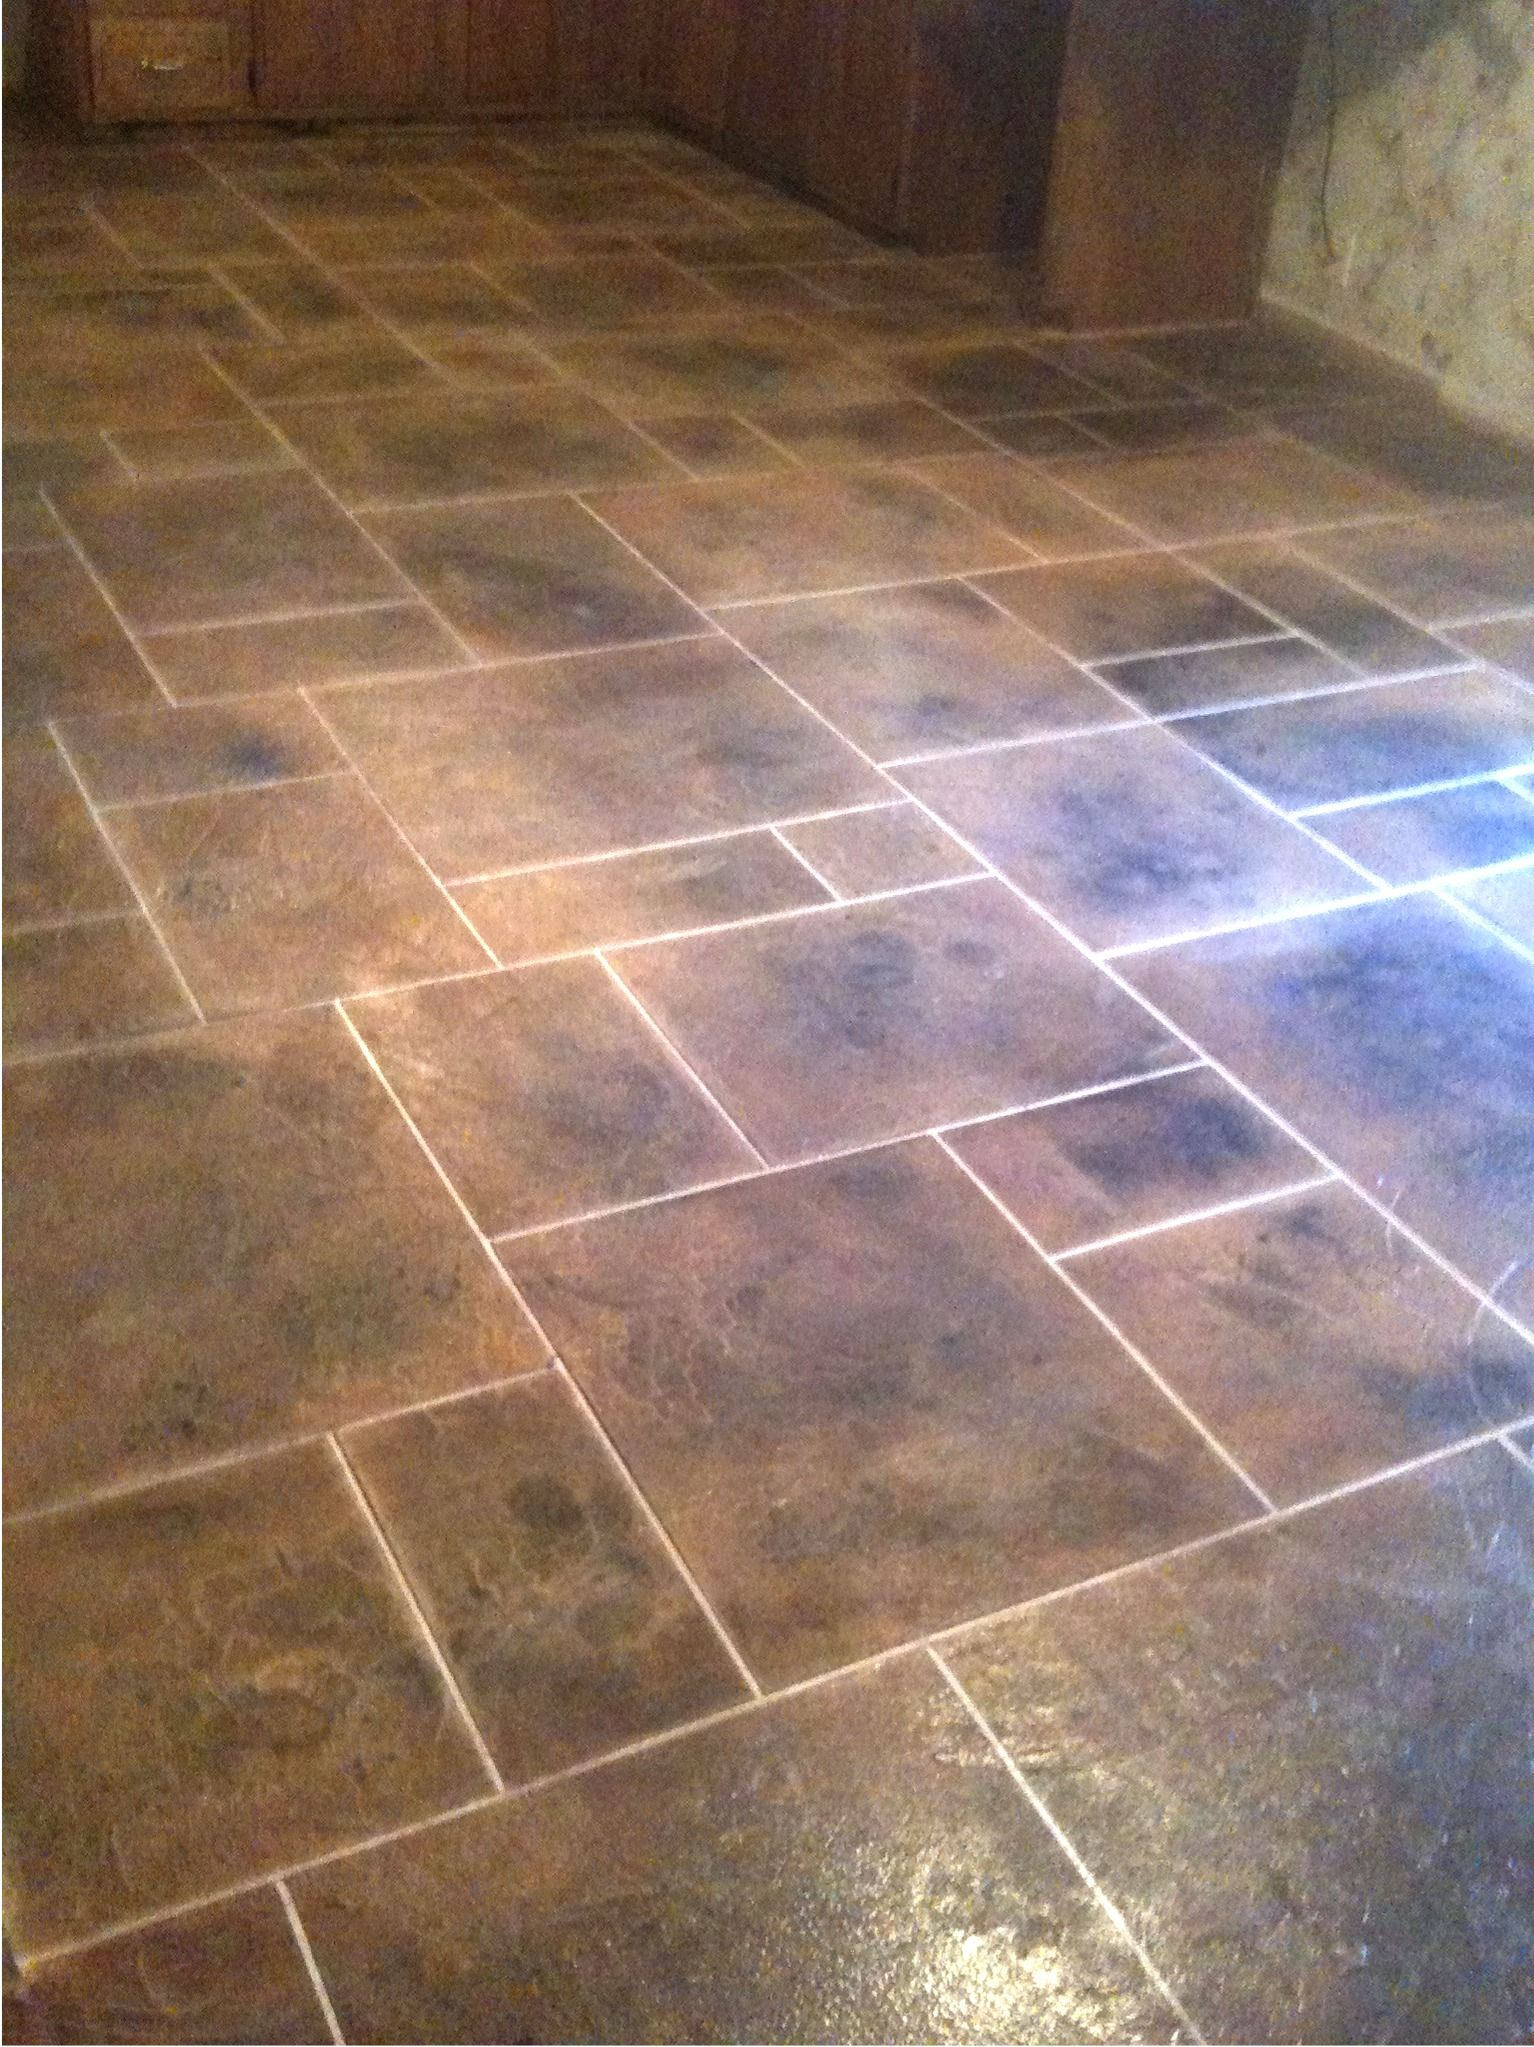 kitchen floor tiles Kitchen Floor Tile Patterns concrete overlay random pattern stone tile kitchen floor